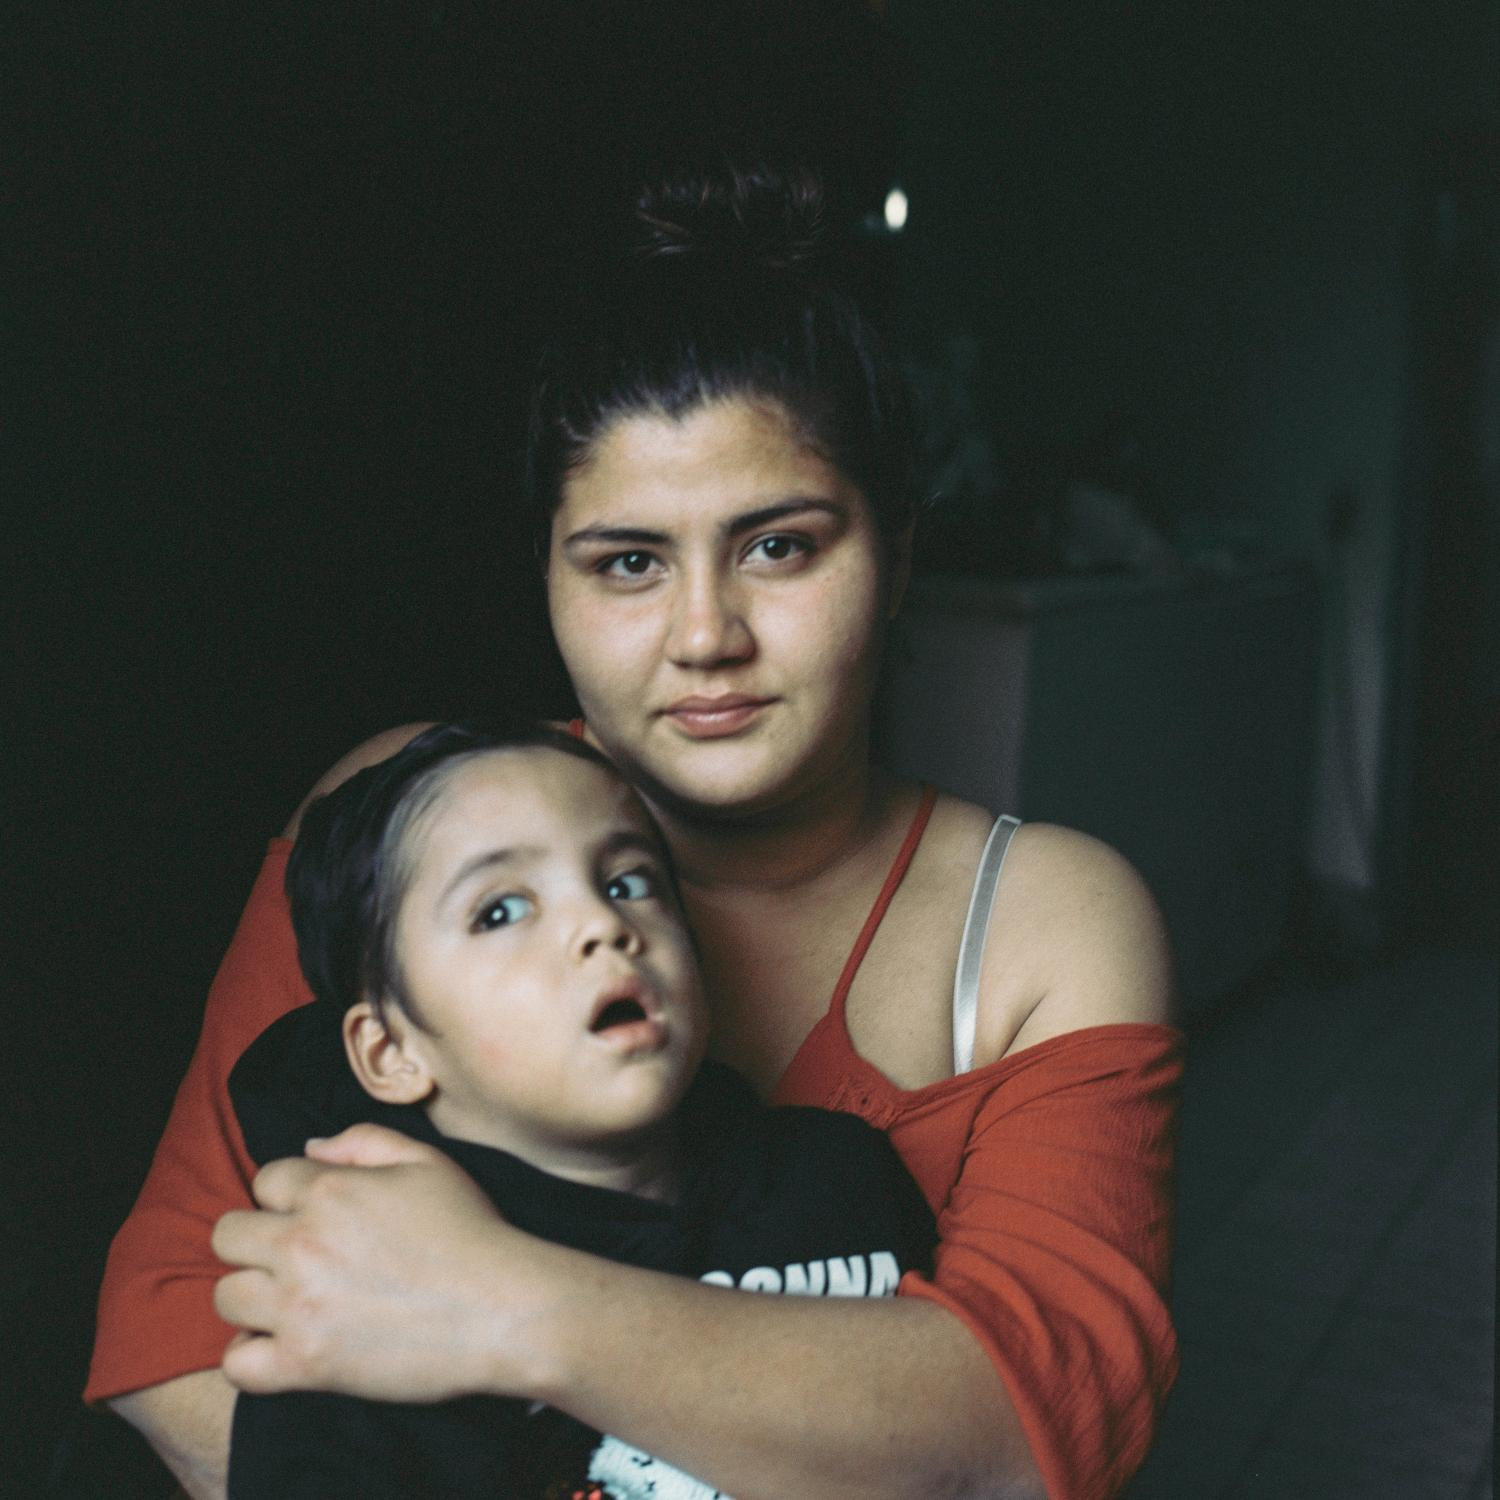 """Fabiola Guadalupe Tirado Guarcia 19 years old with her 3 year and a half year old son Jesús Tadeo Cortez Tirado. The father of Jesús is Alain the missing son of Irma. Jesus has a disability. """"I have a dad, well I had a dad who disappeared in 2013. He's been missing for 7 and I still know nothing on his fate. I got together with my son's dad and they made him disappear too. I carried in living. When my son was 2 years-old, I got in a relationship with another man and he too was disappeared. Here in Sinaloa life is a little bit hard on this side."""" Shot with the support of the CNAP. Mazatlan, Sinaloa, Mexico, March 2021."""